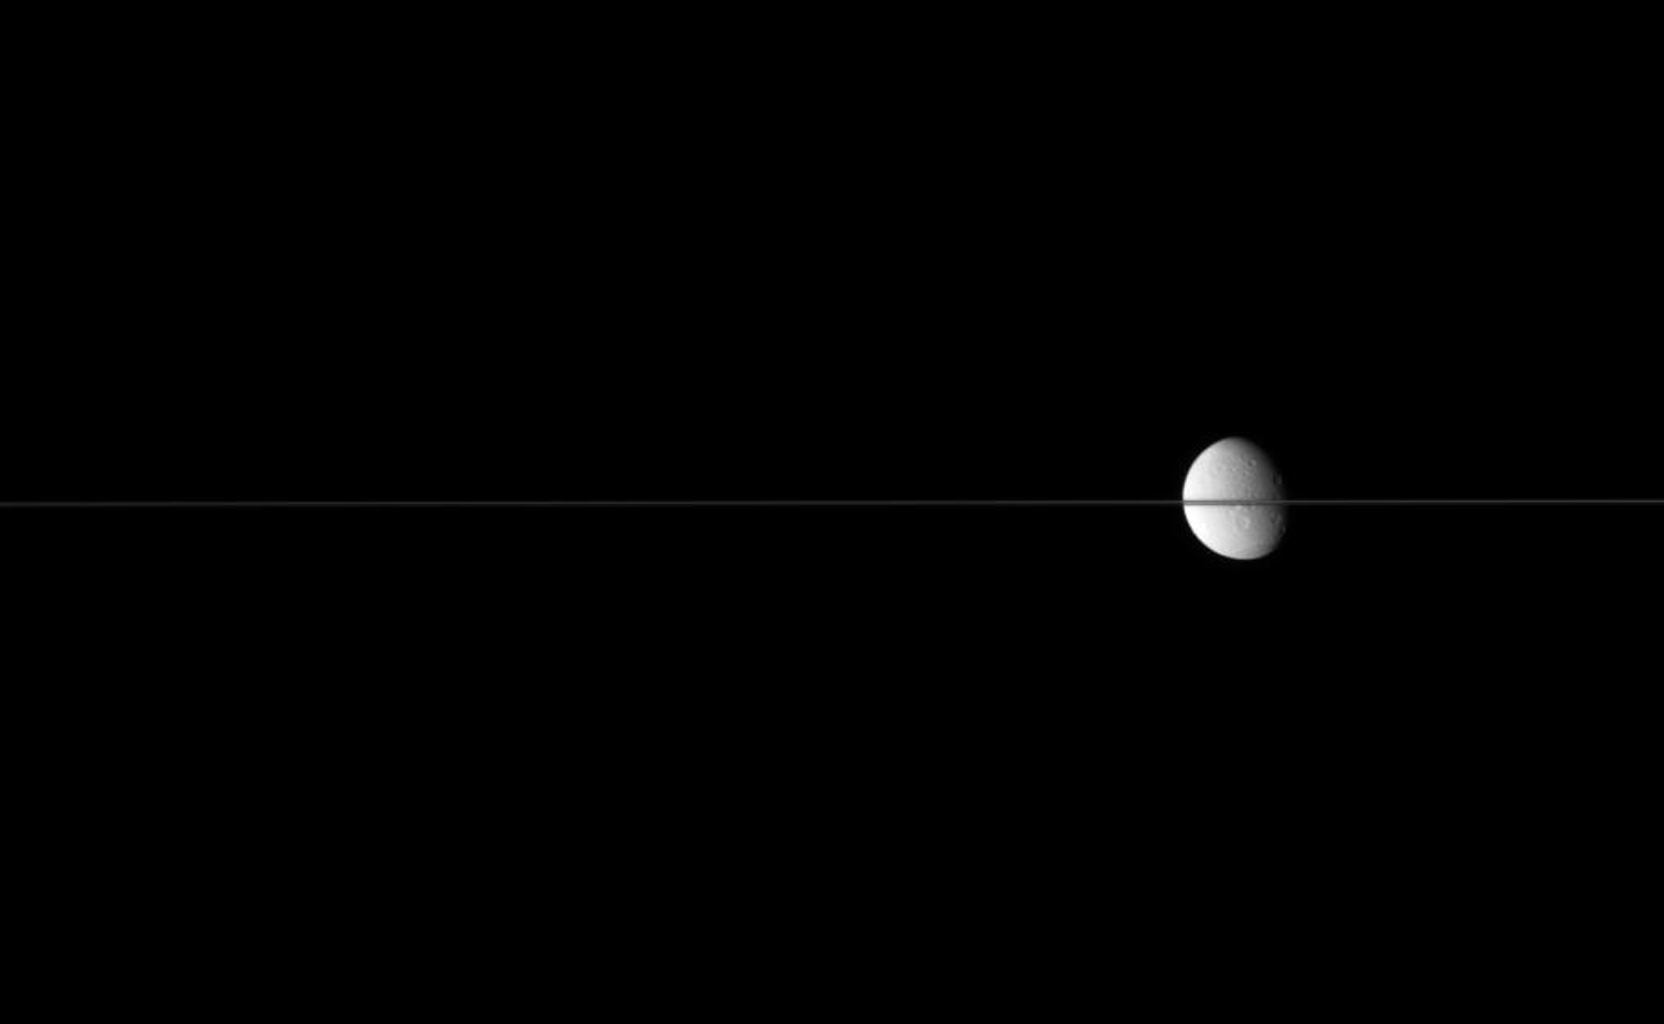 Dione floats in the sea of space, bisected by Saturn's edge-on ringplane. This image was taken in visible light with NASA's Cassini spacecraft's narrow-angle camera on July 2, 2007 at a distance of approximately 2.5 million kilometers from Dione.